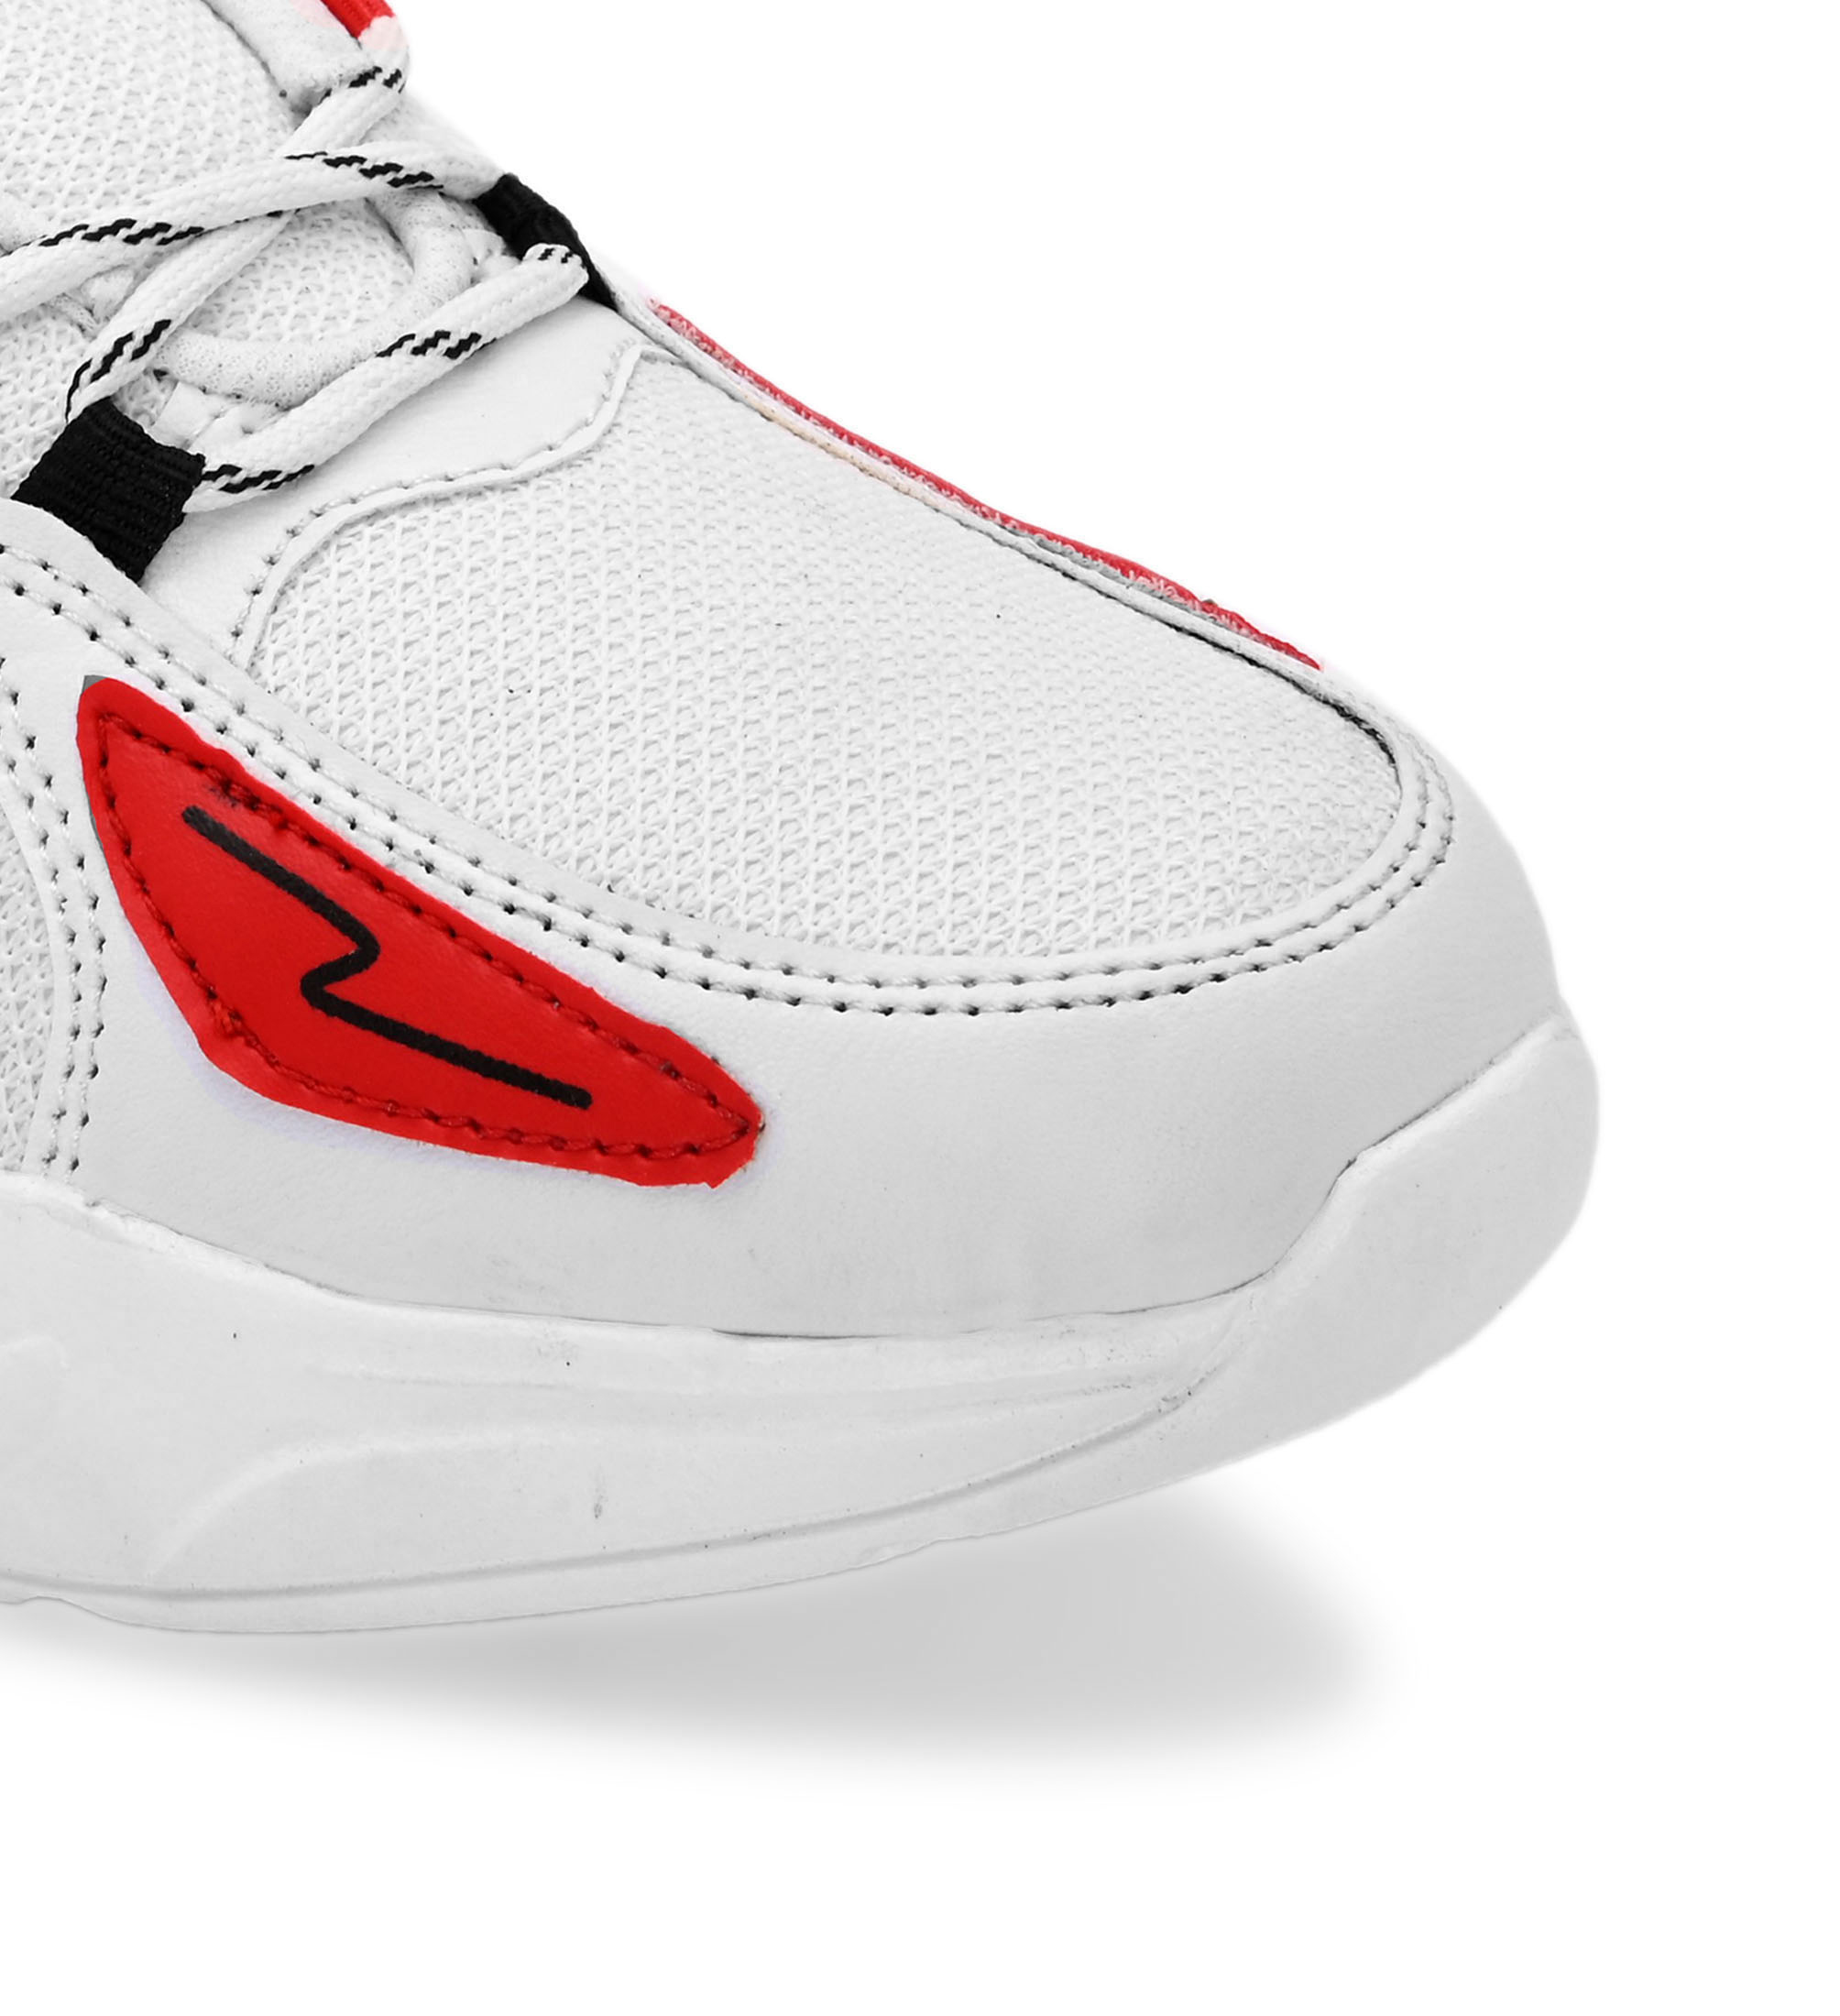 BRIFAR COMFORTABLE & TRENDY SPORTS SHOES ARE RELIABLE FOR ANY BFS0813WHT (6-9, WHITE, 4 PAIR)